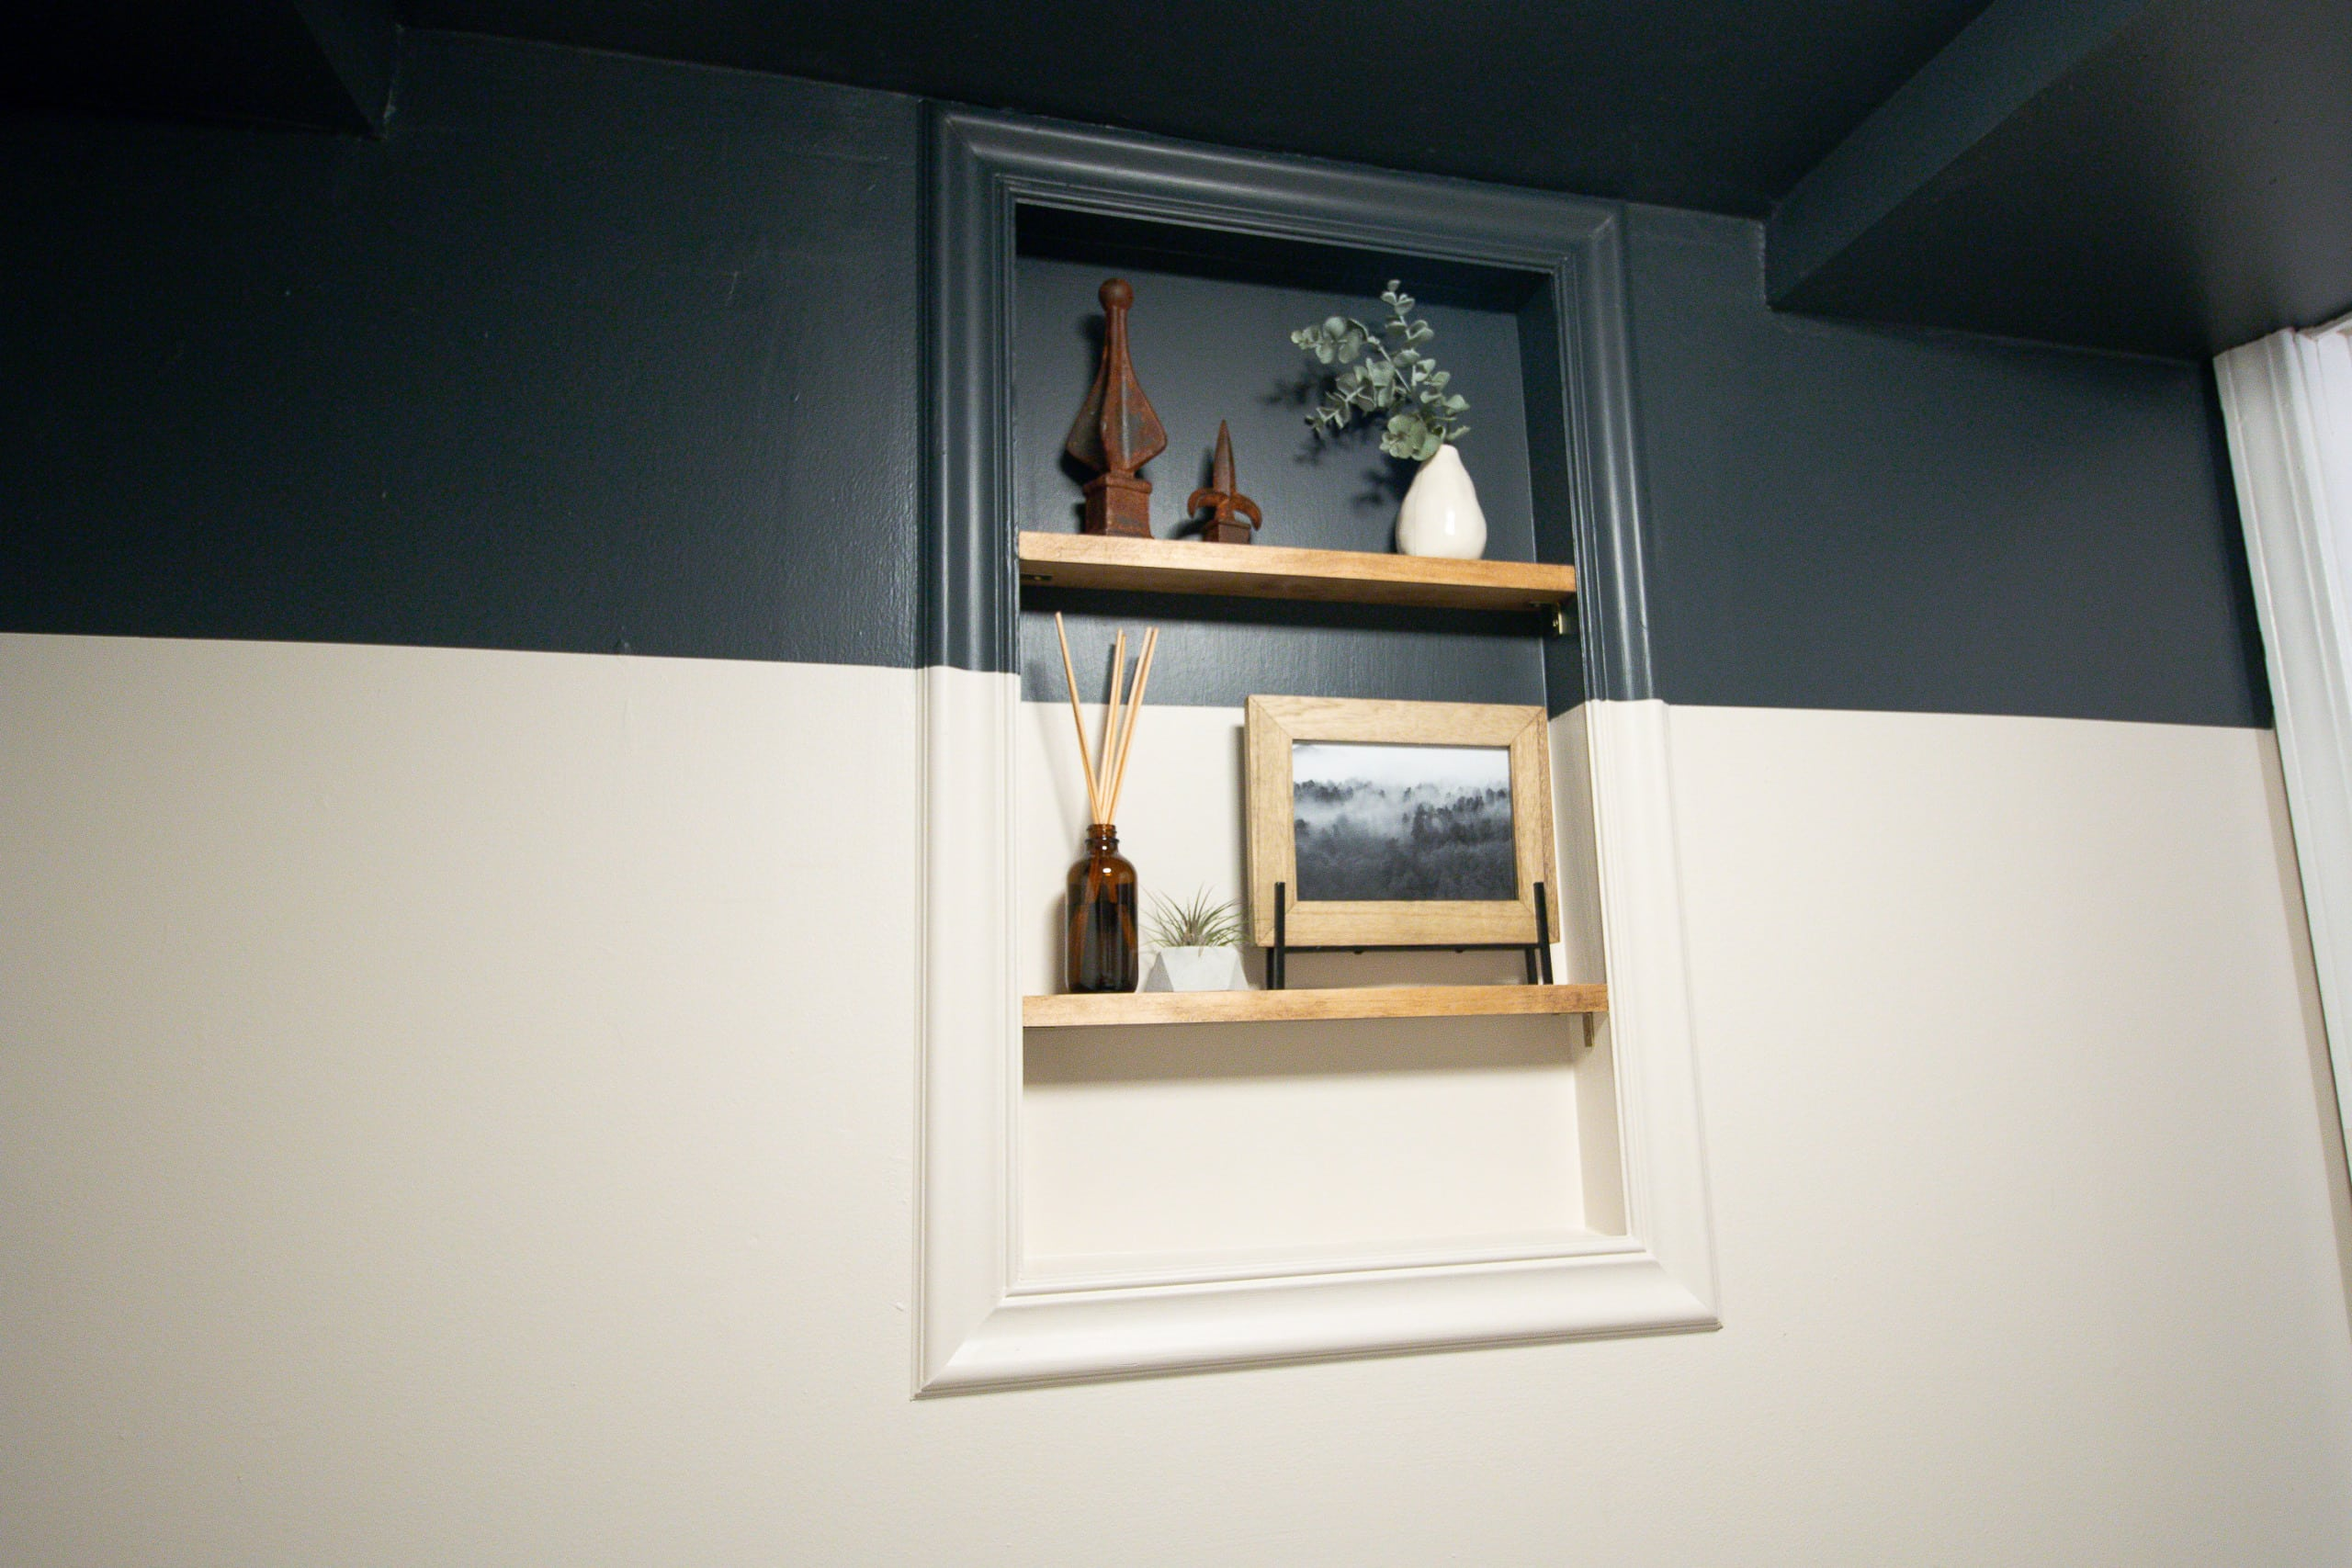 Our new window shelves in the bathroom